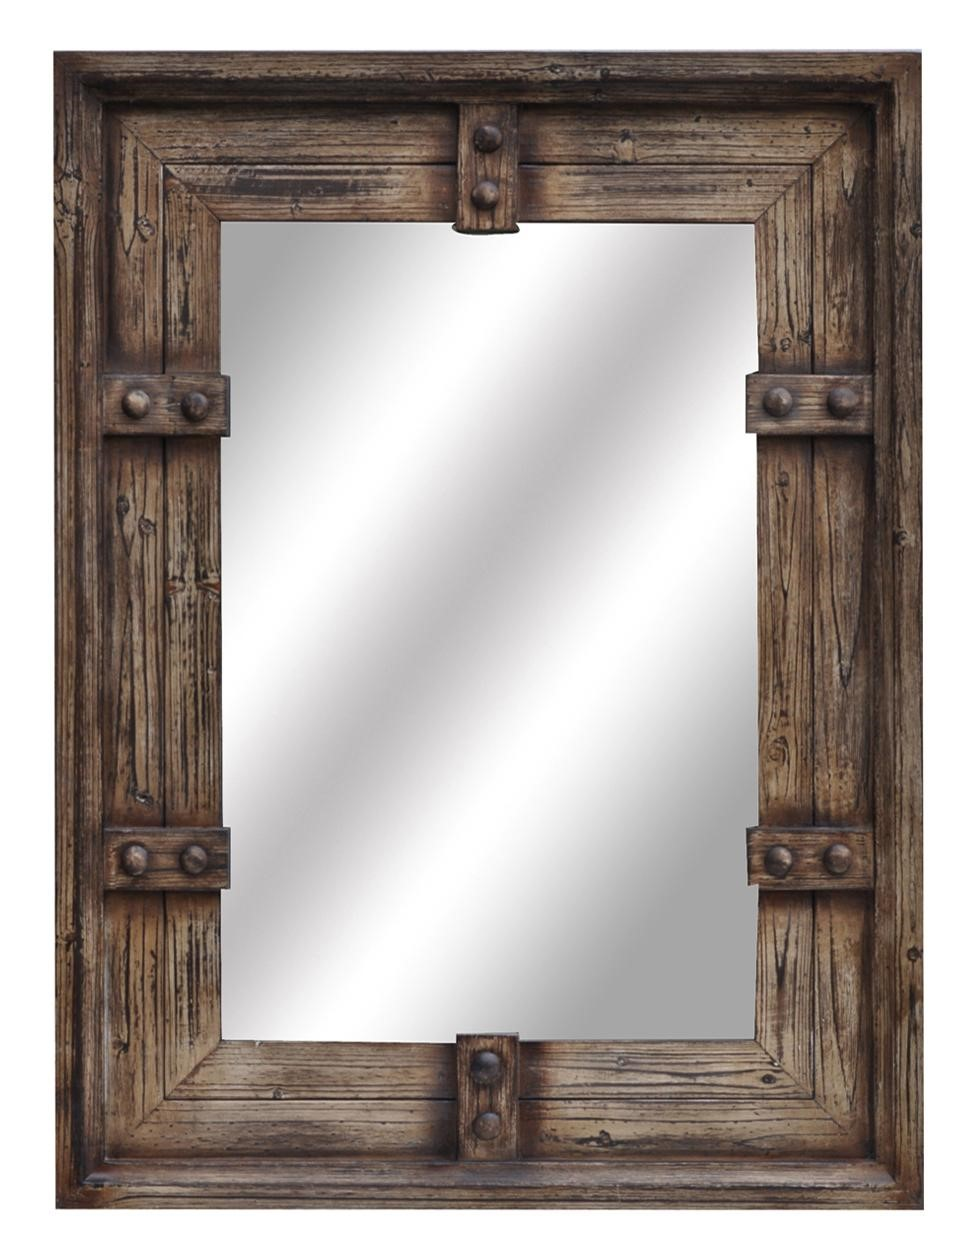 new large 44 aged wood style wall mirror rustic western